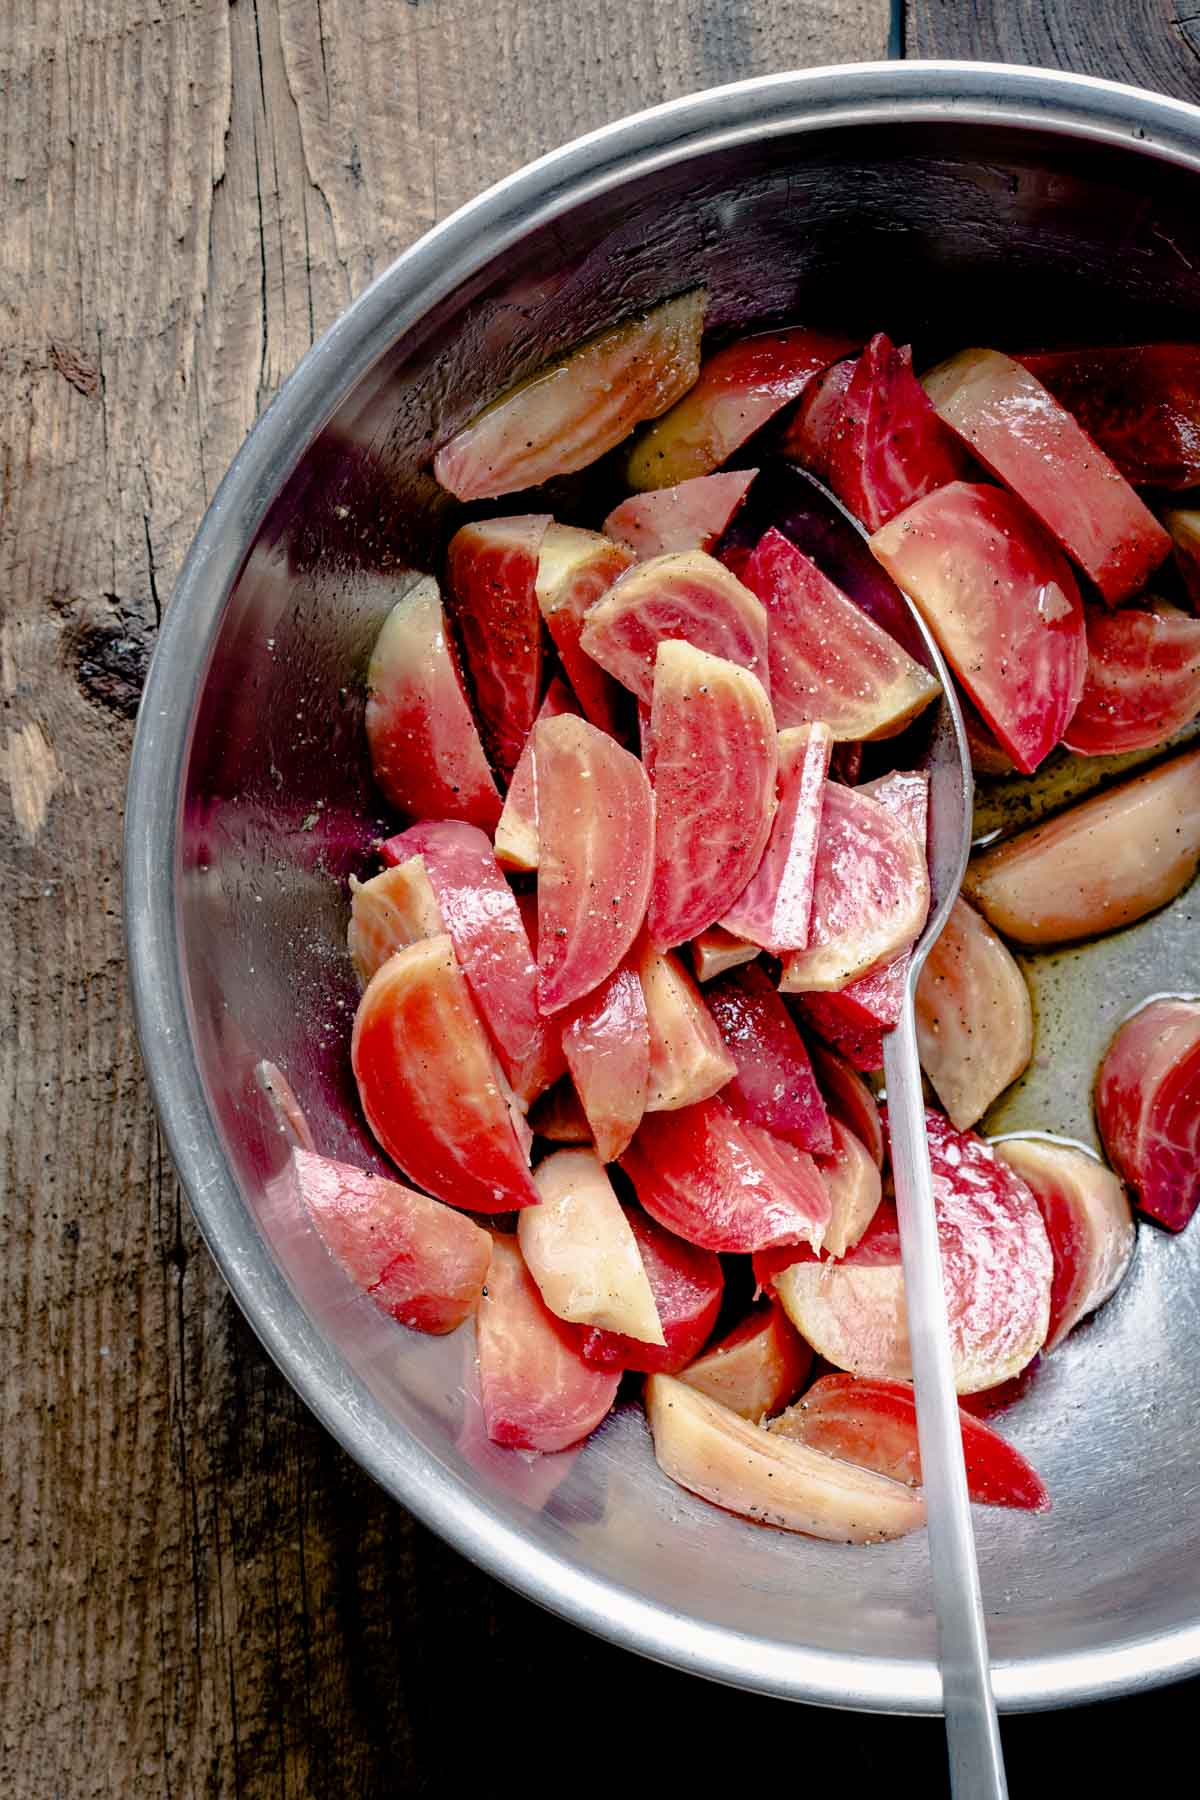 Chioggia beets in a stainless bowl with vinegar, oil and salt and pepper.